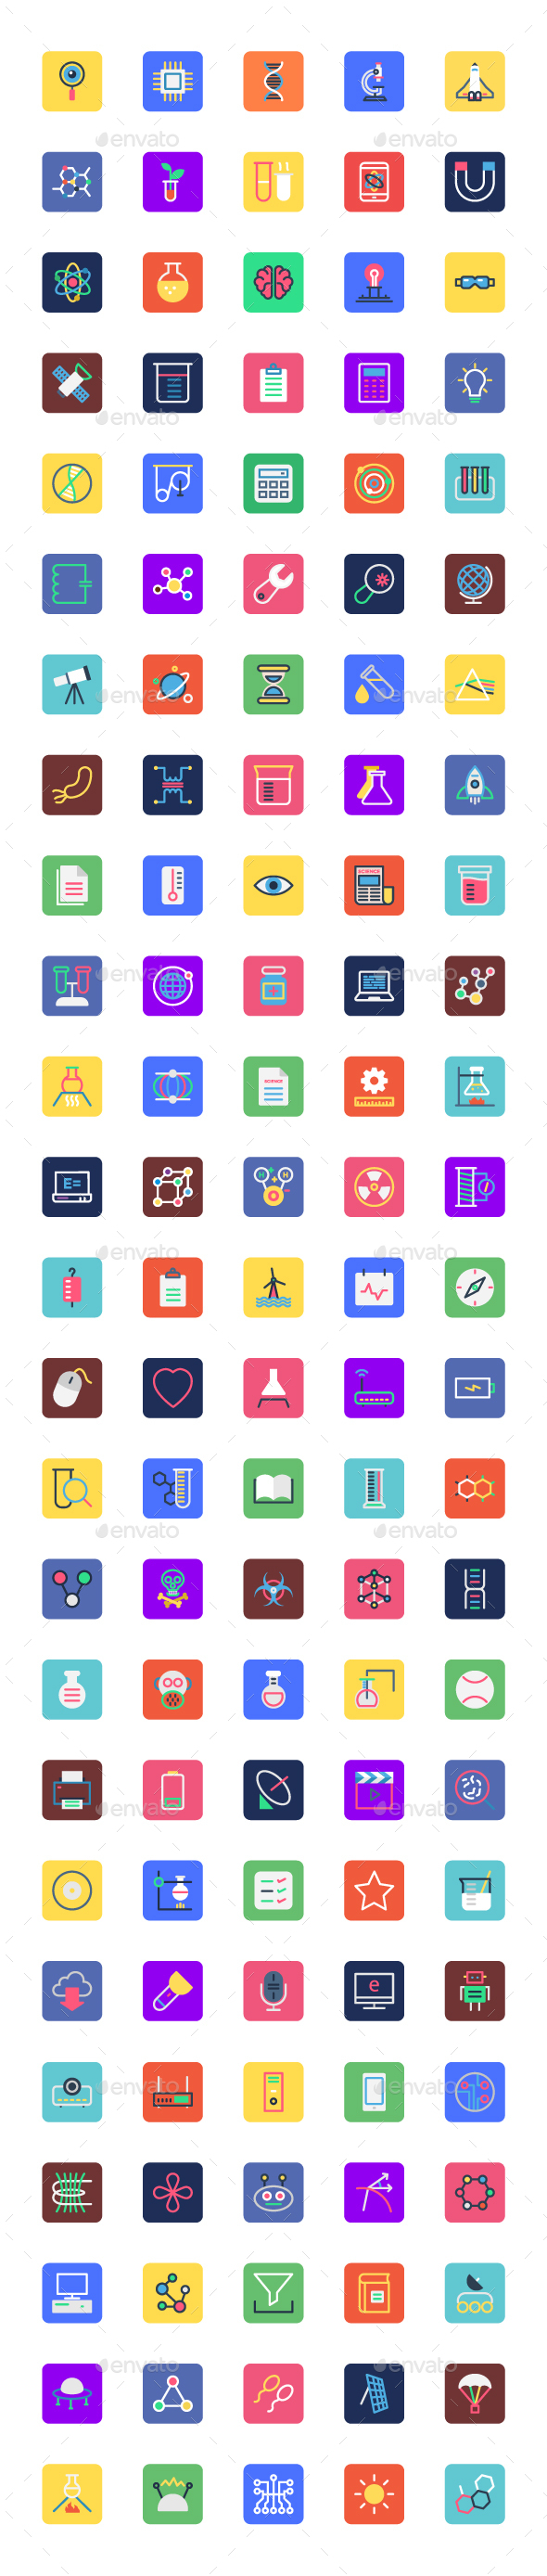 125 Science and Technology Icons Set - Icons